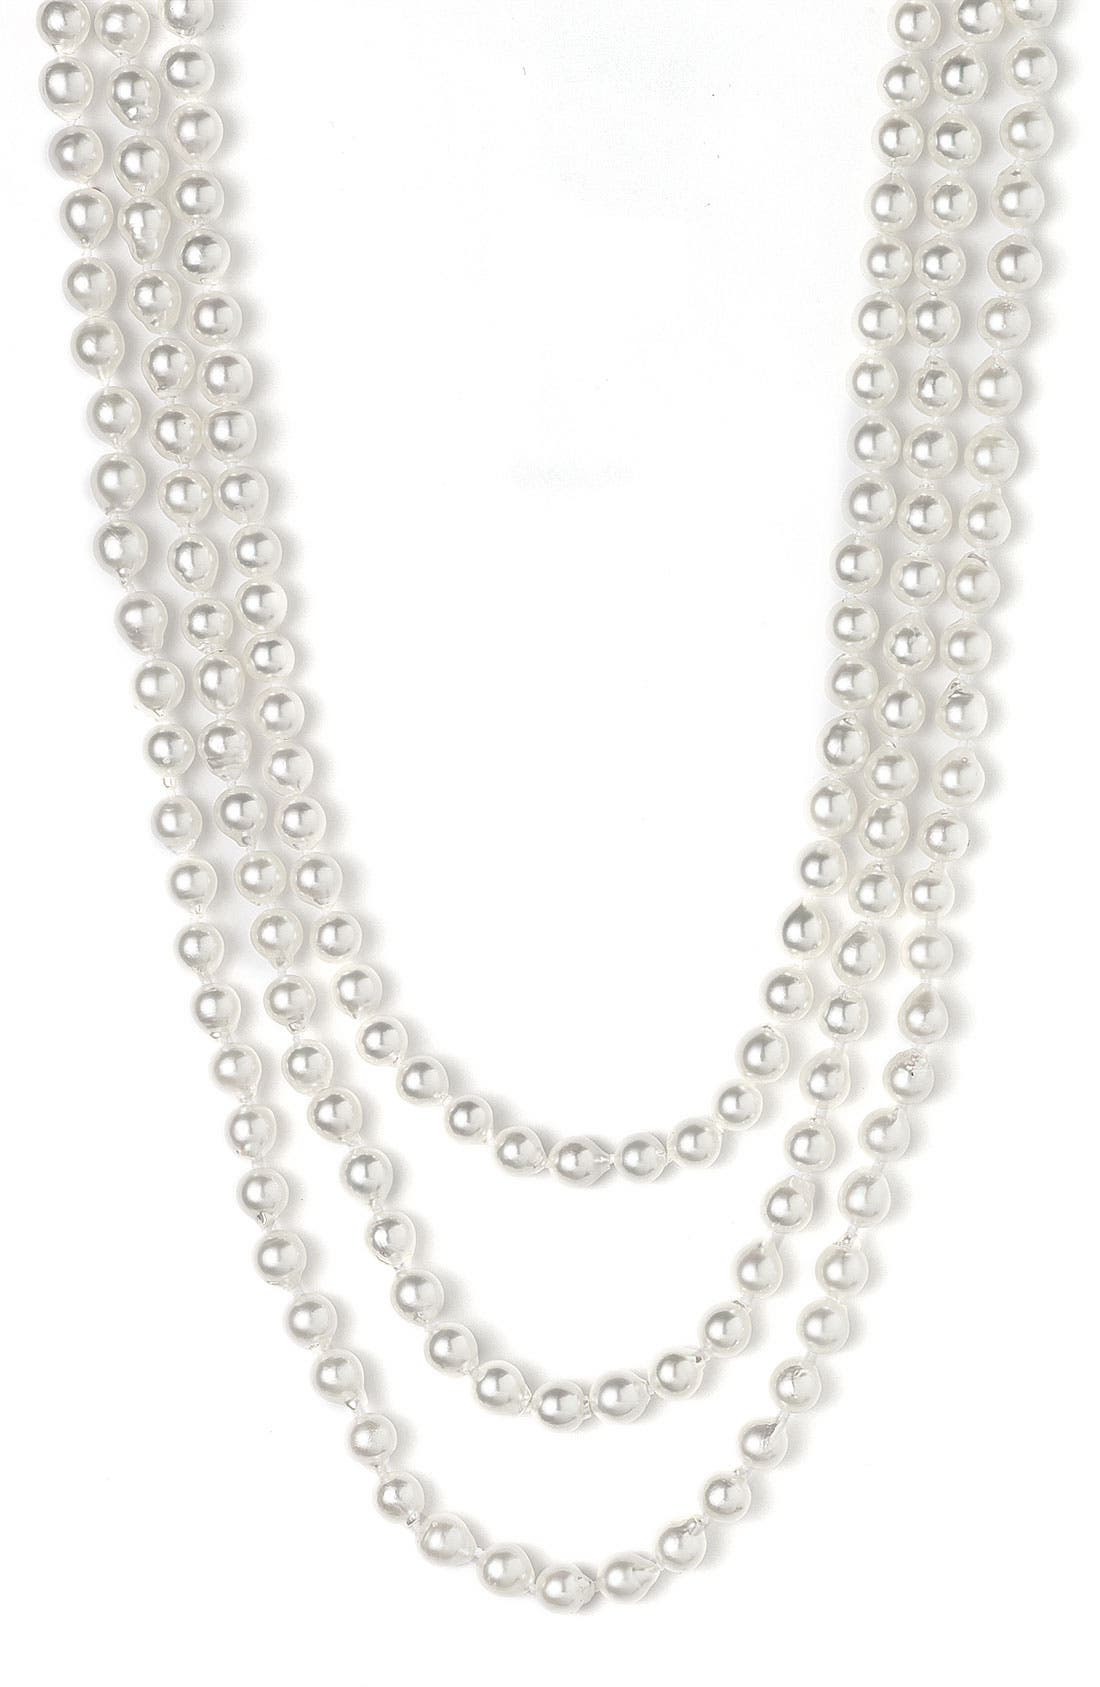 Alternate Image 1 Selected - Mastoloni Akoya 7mm Pearl Extra Long Strand Necklace